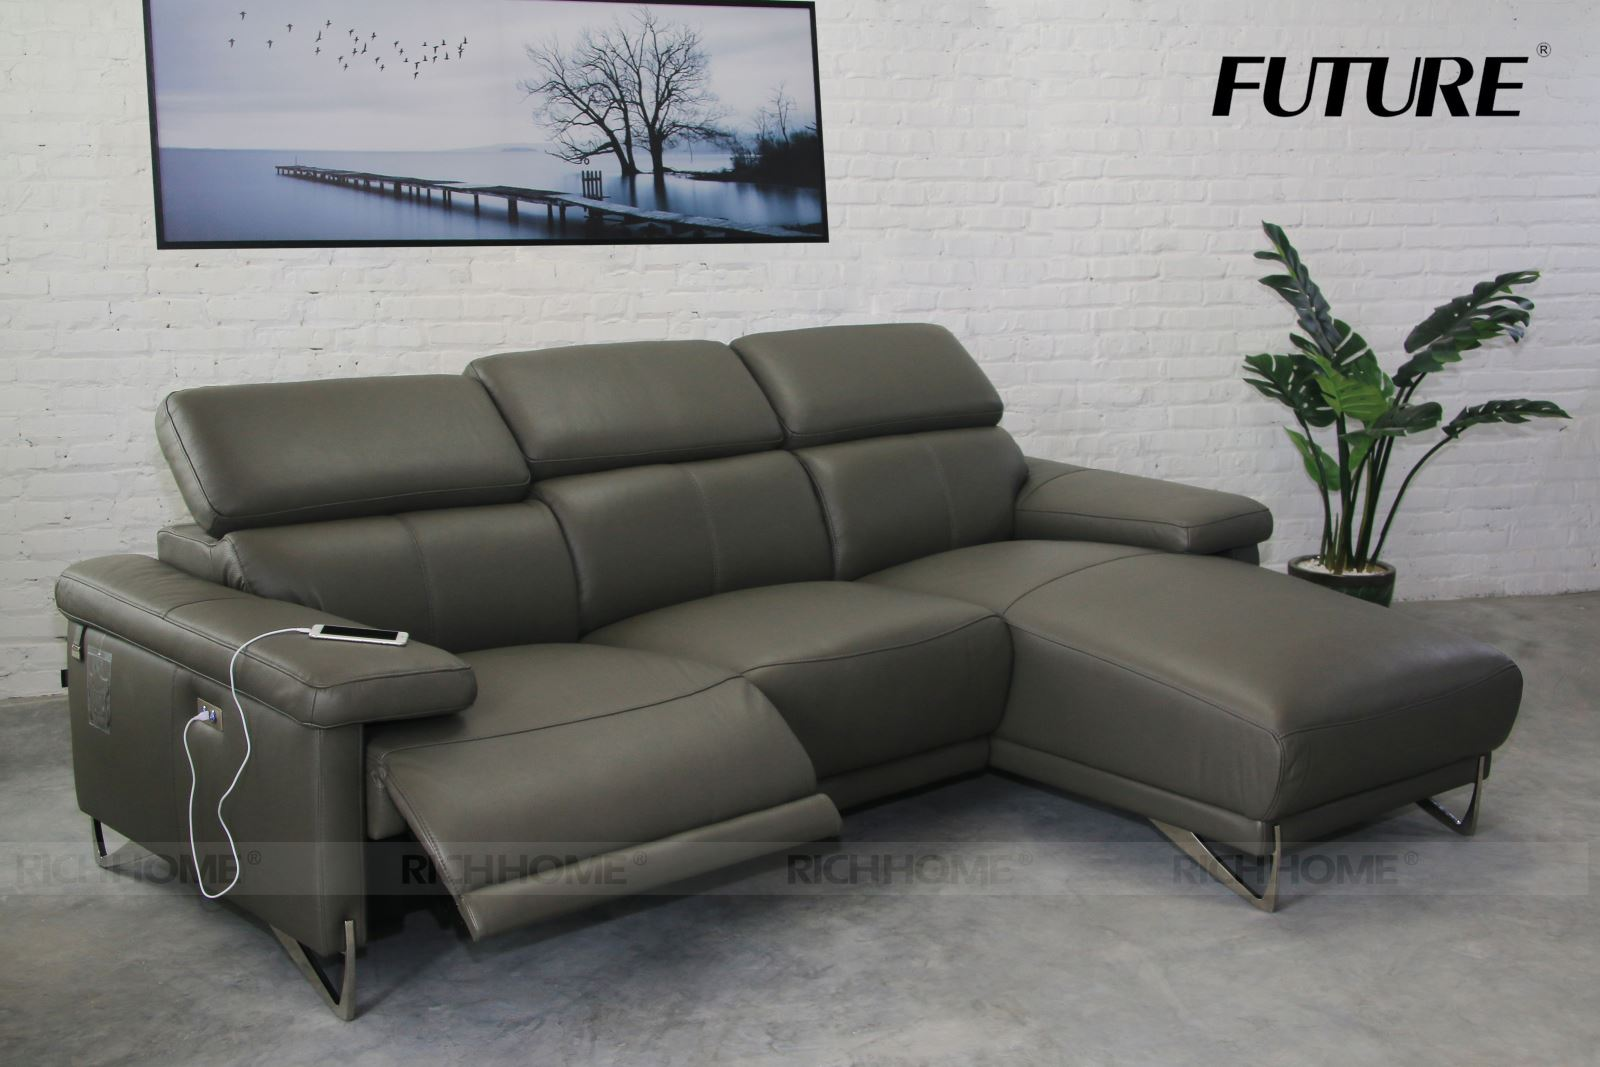 SOFA DA BÒ CHỮ L - FUTURE MODEL 7067 (3L)